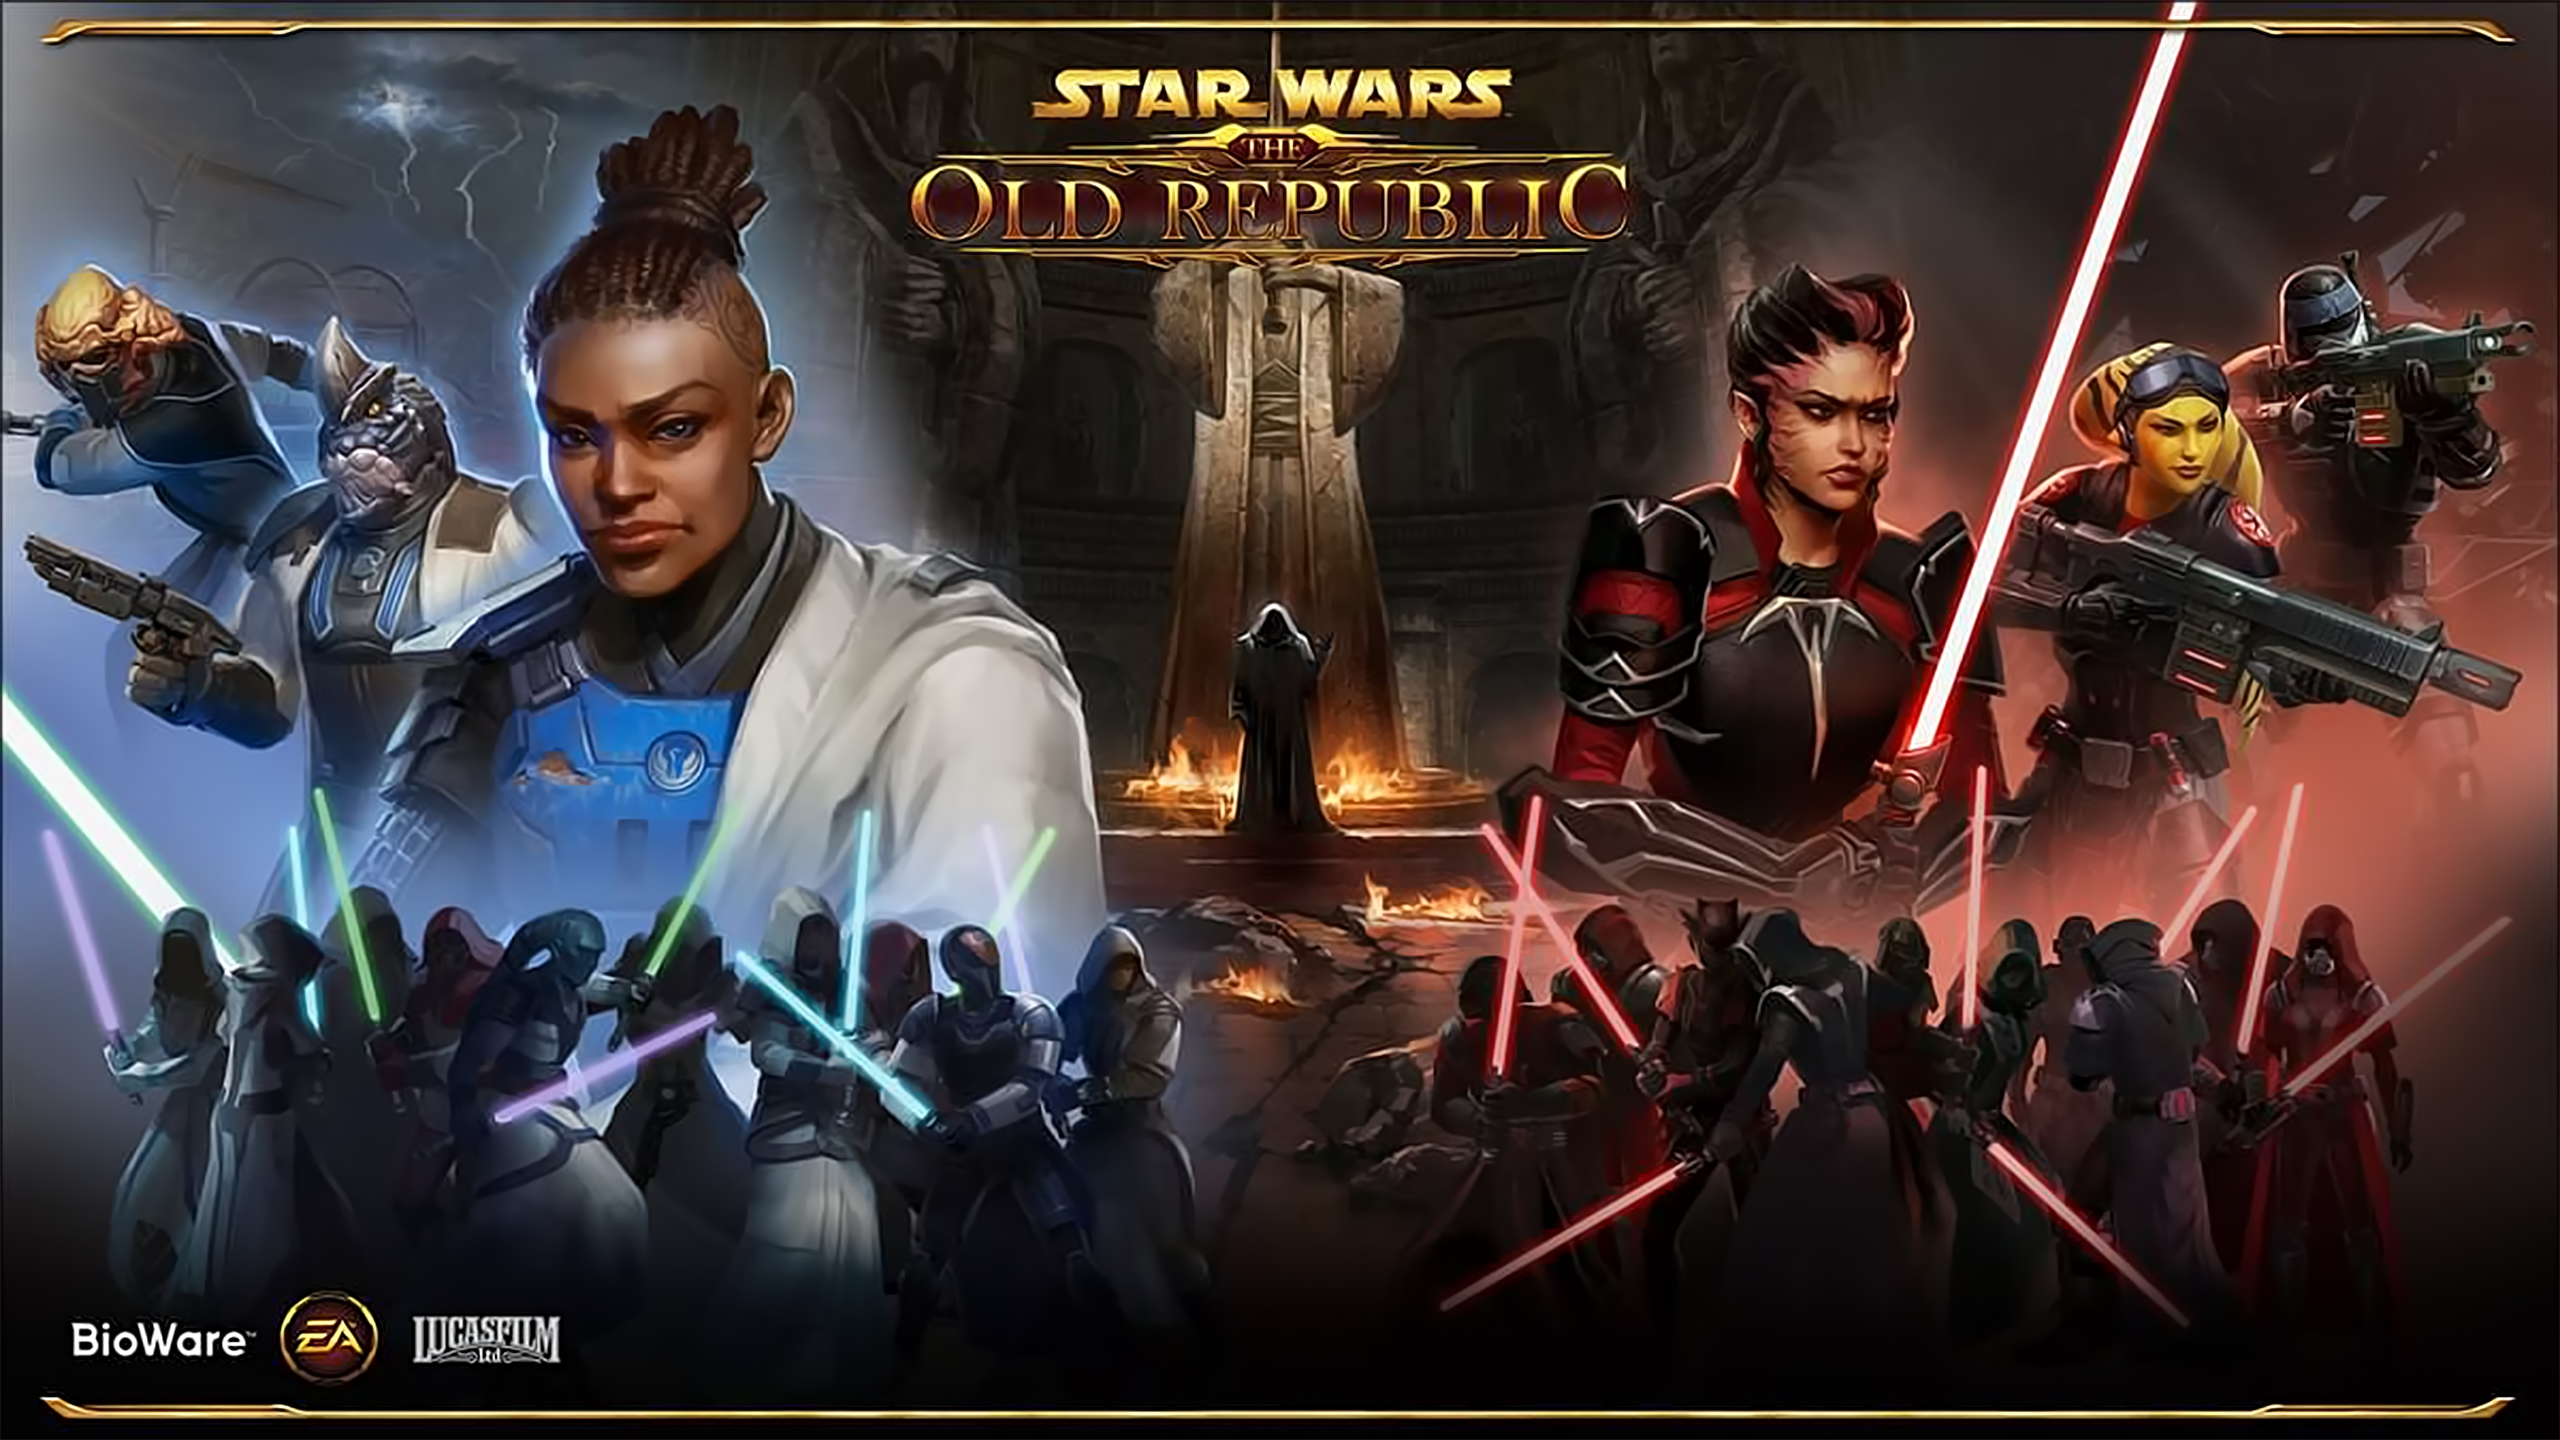 Swtor Wallpapers Top Free Swtor Backgrounds Wallpaperaccess